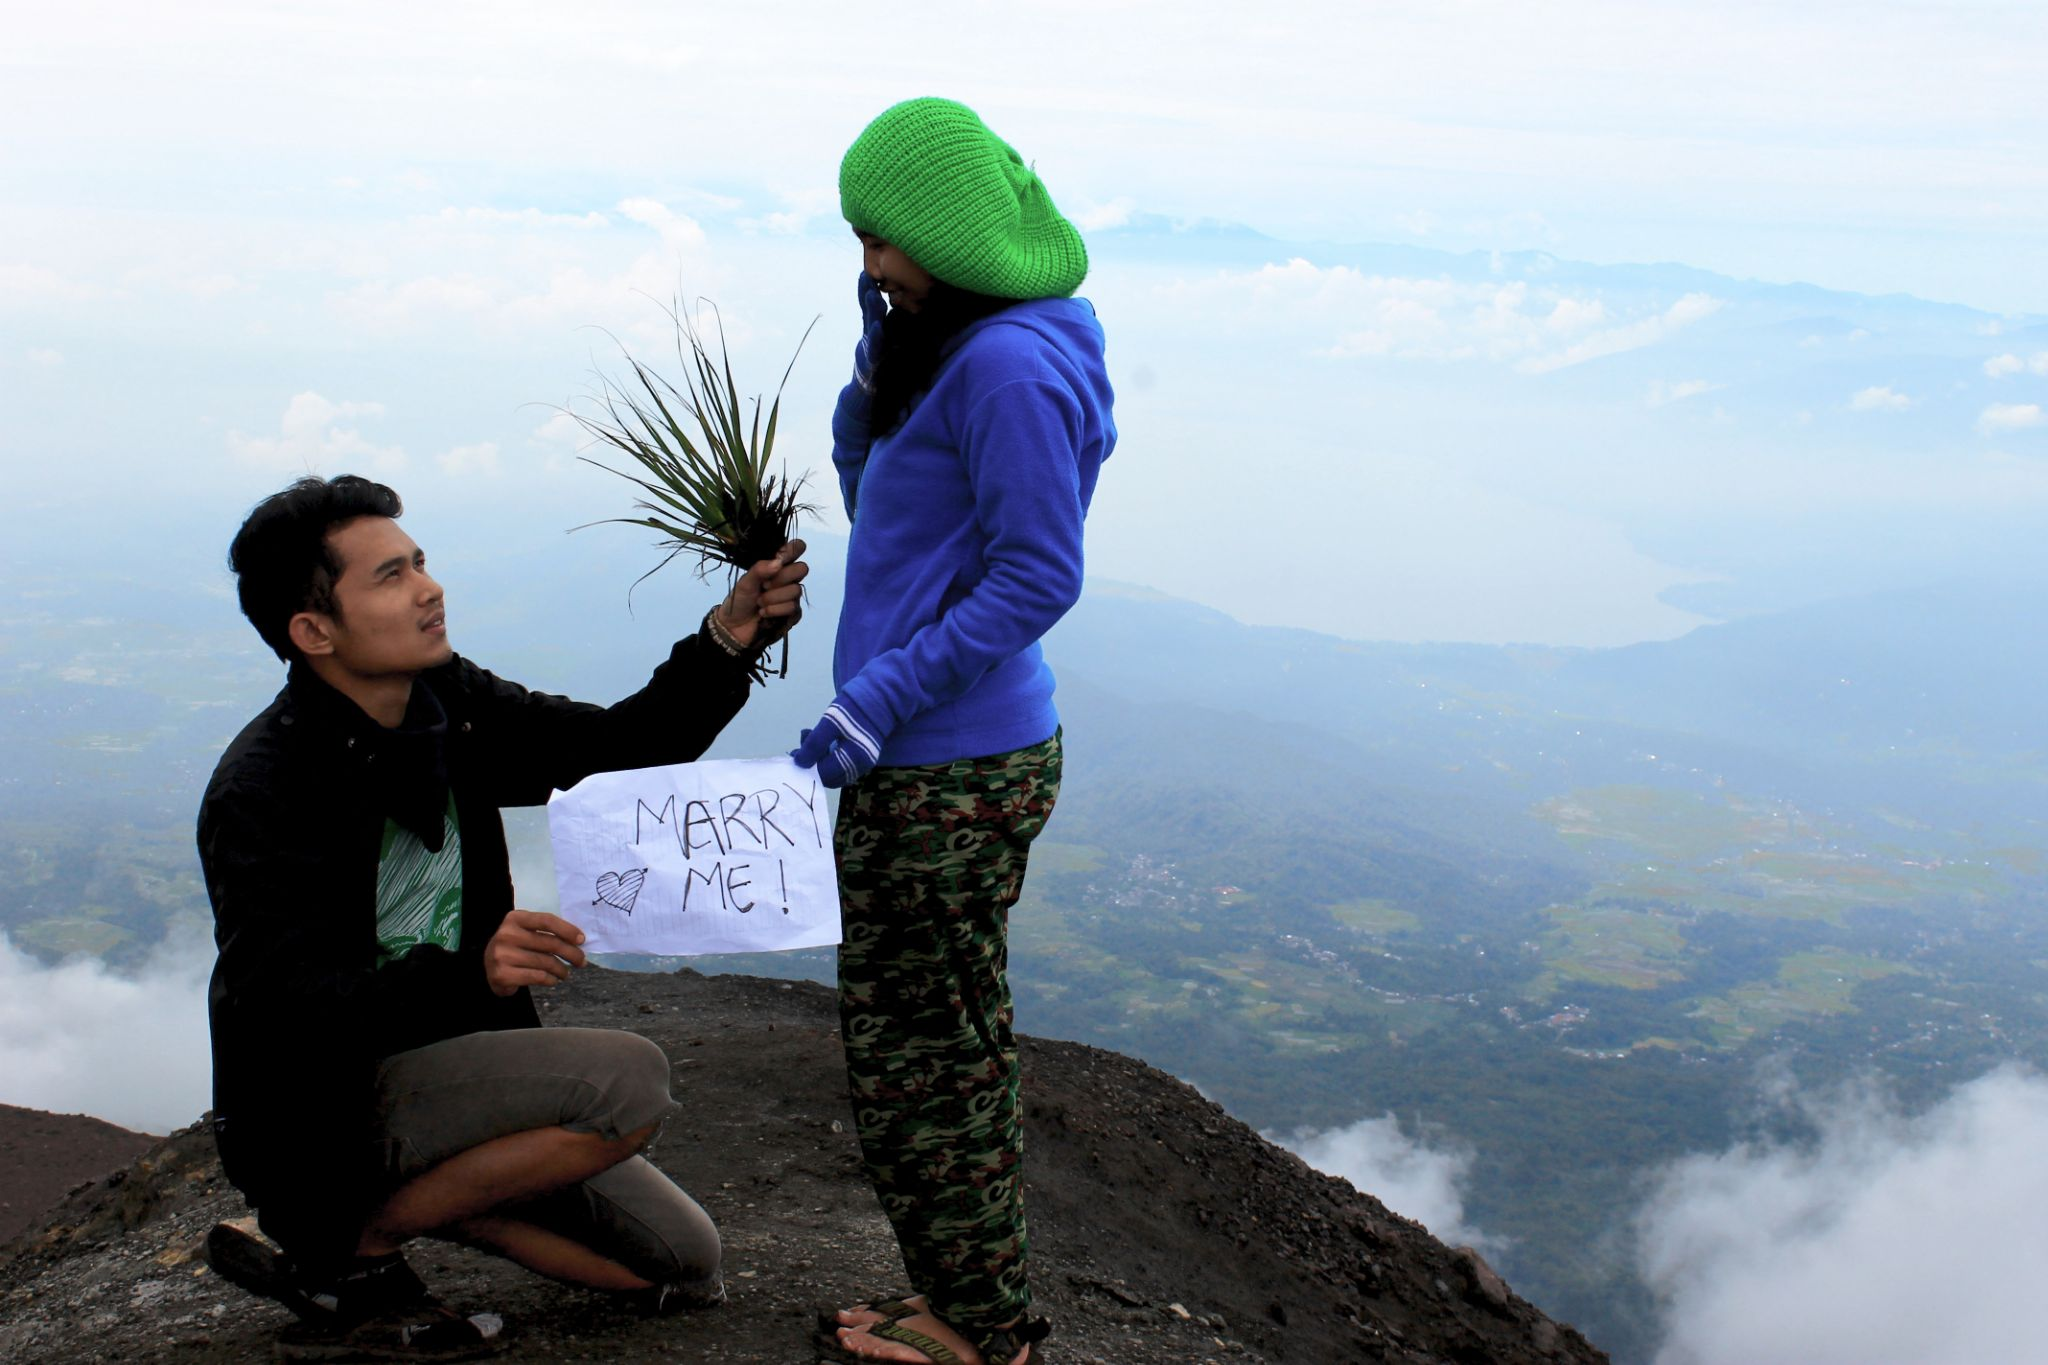 romantic moment on the top by ihsanul akhiar